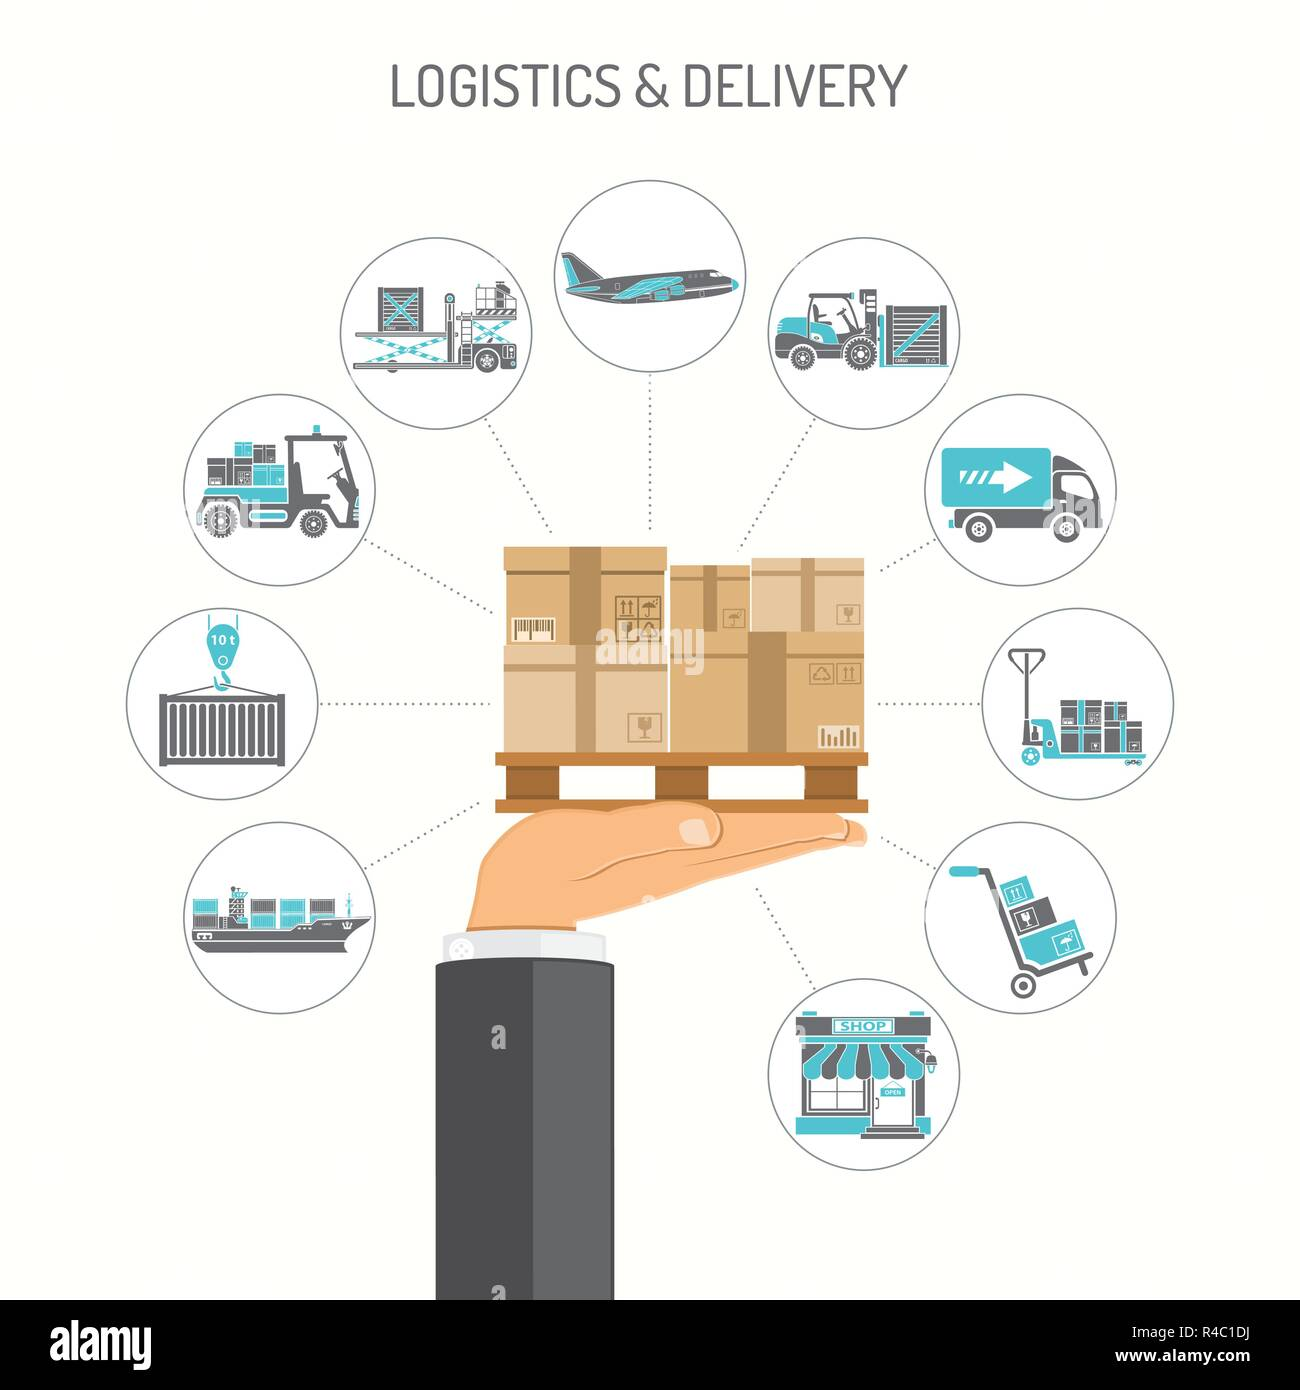 Logistics and Delivery Concept - Stock Image